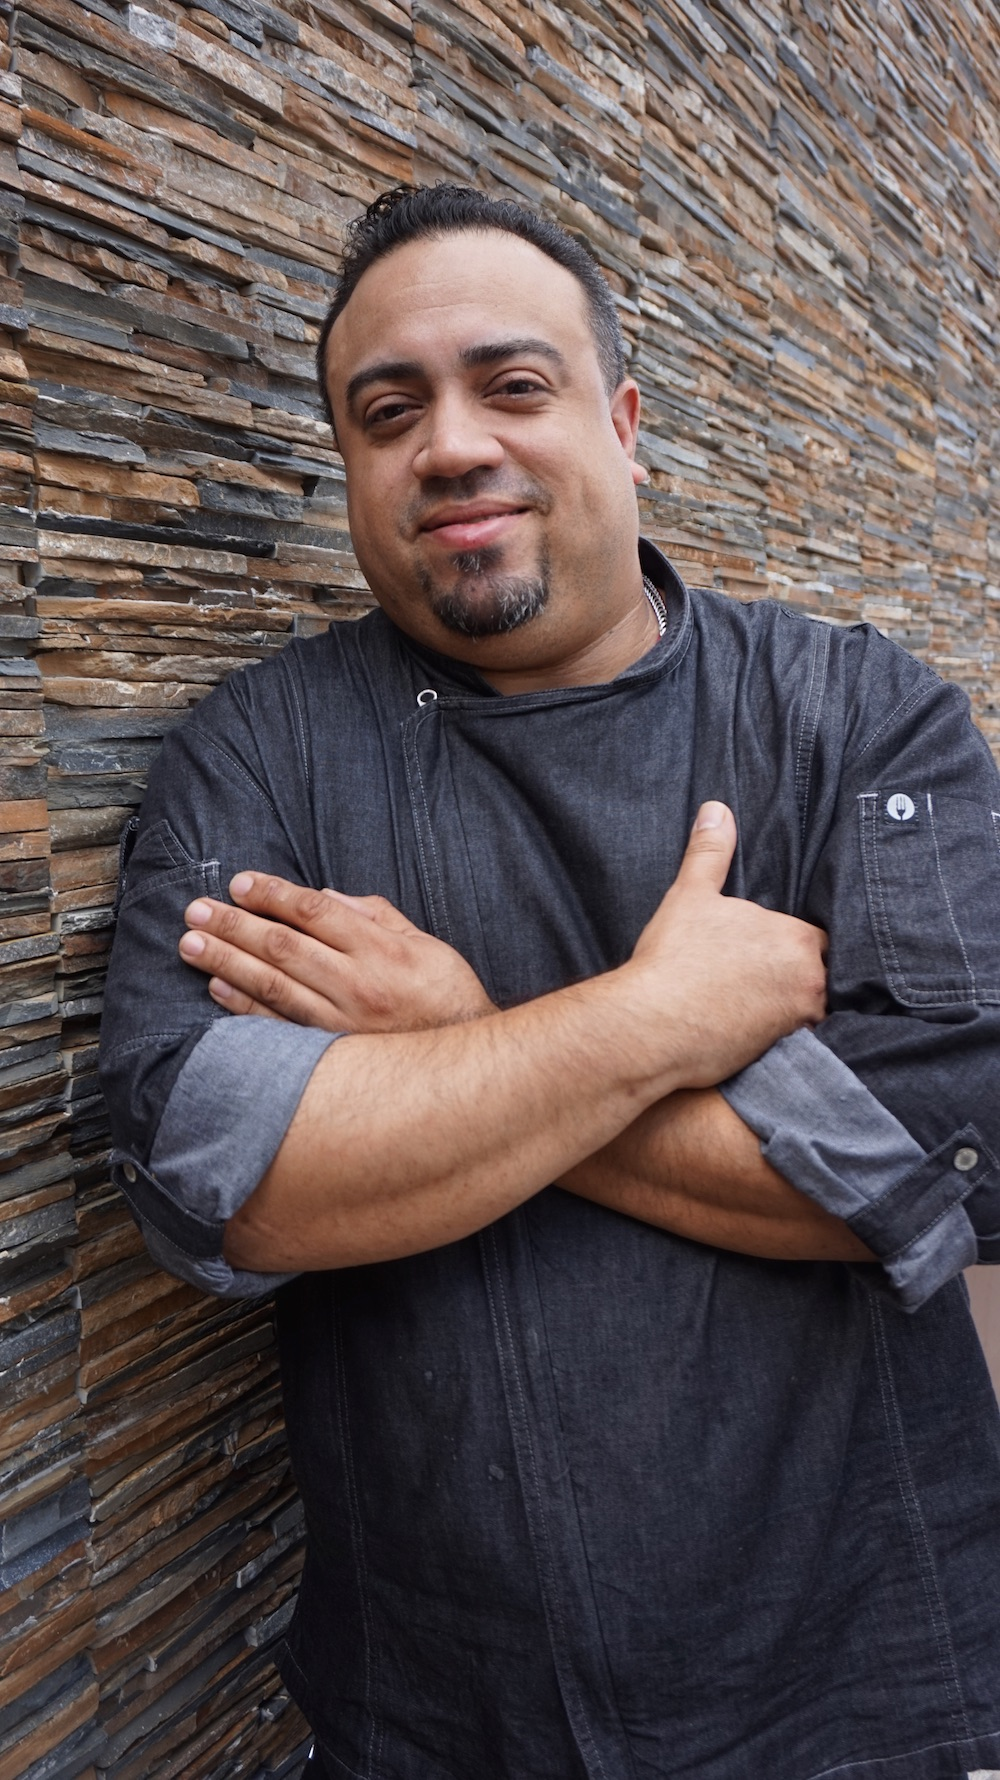 Chef Angel Santiago of Lola's Eclectic Cuisine at the Ponce Plaza Hotel & Casino features a menu that fuses classic dishes with Caribbean and Puerto Rican cuisine.